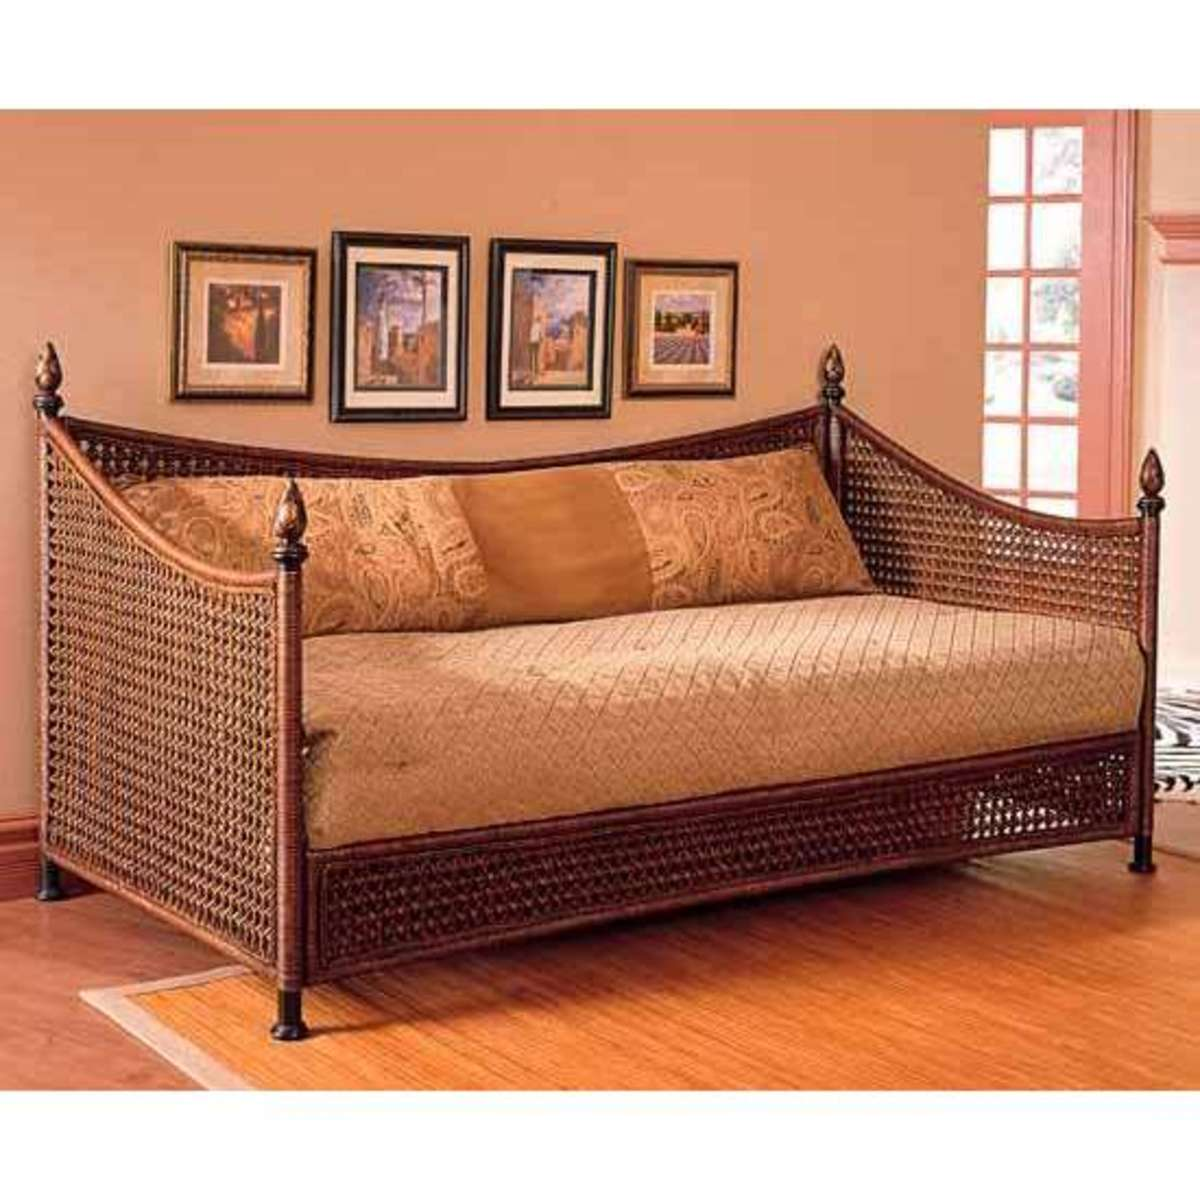 Daybed frame option in transitional wicker